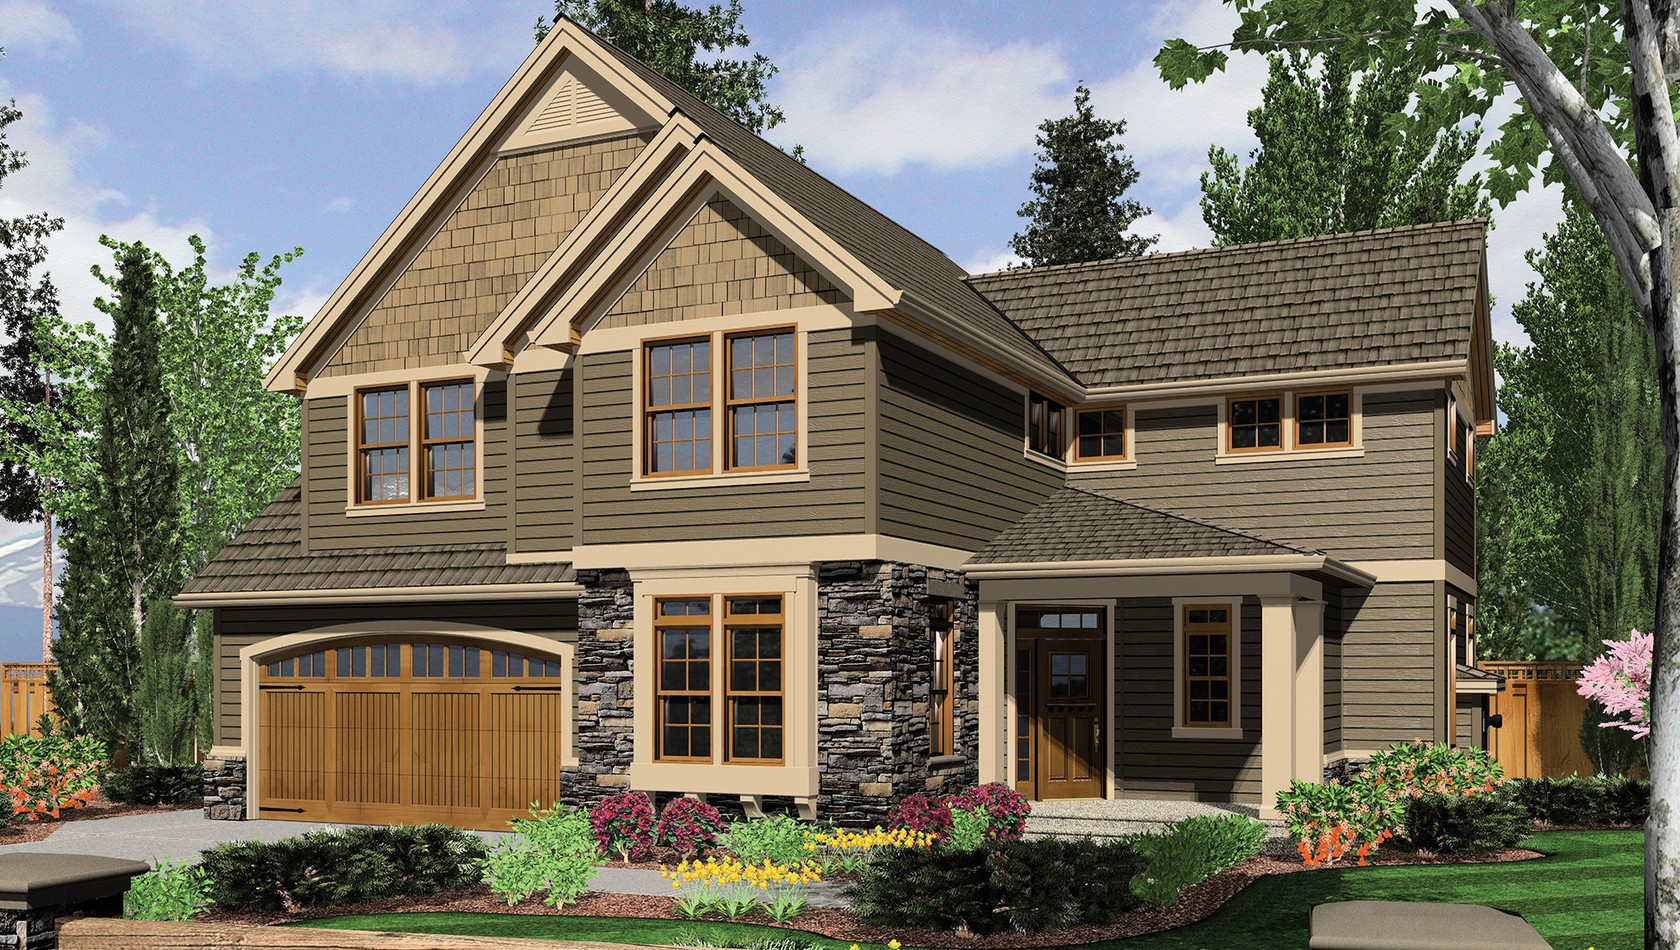 Main image for house plan 22155: The Gaylord